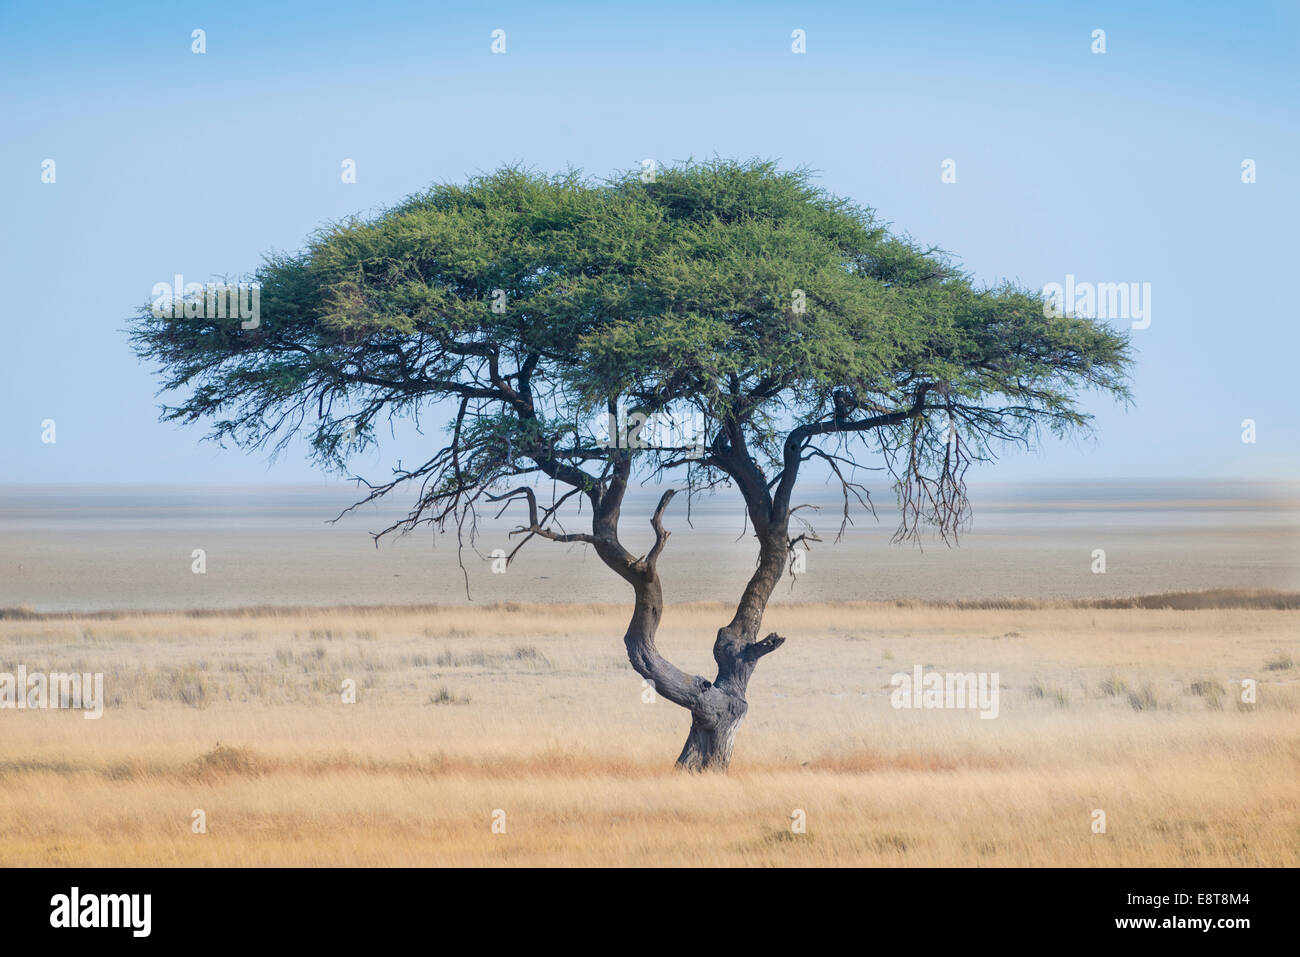 Umbrella Thorn Acacia Tortilis Tree In Front Of The Etosha Pan